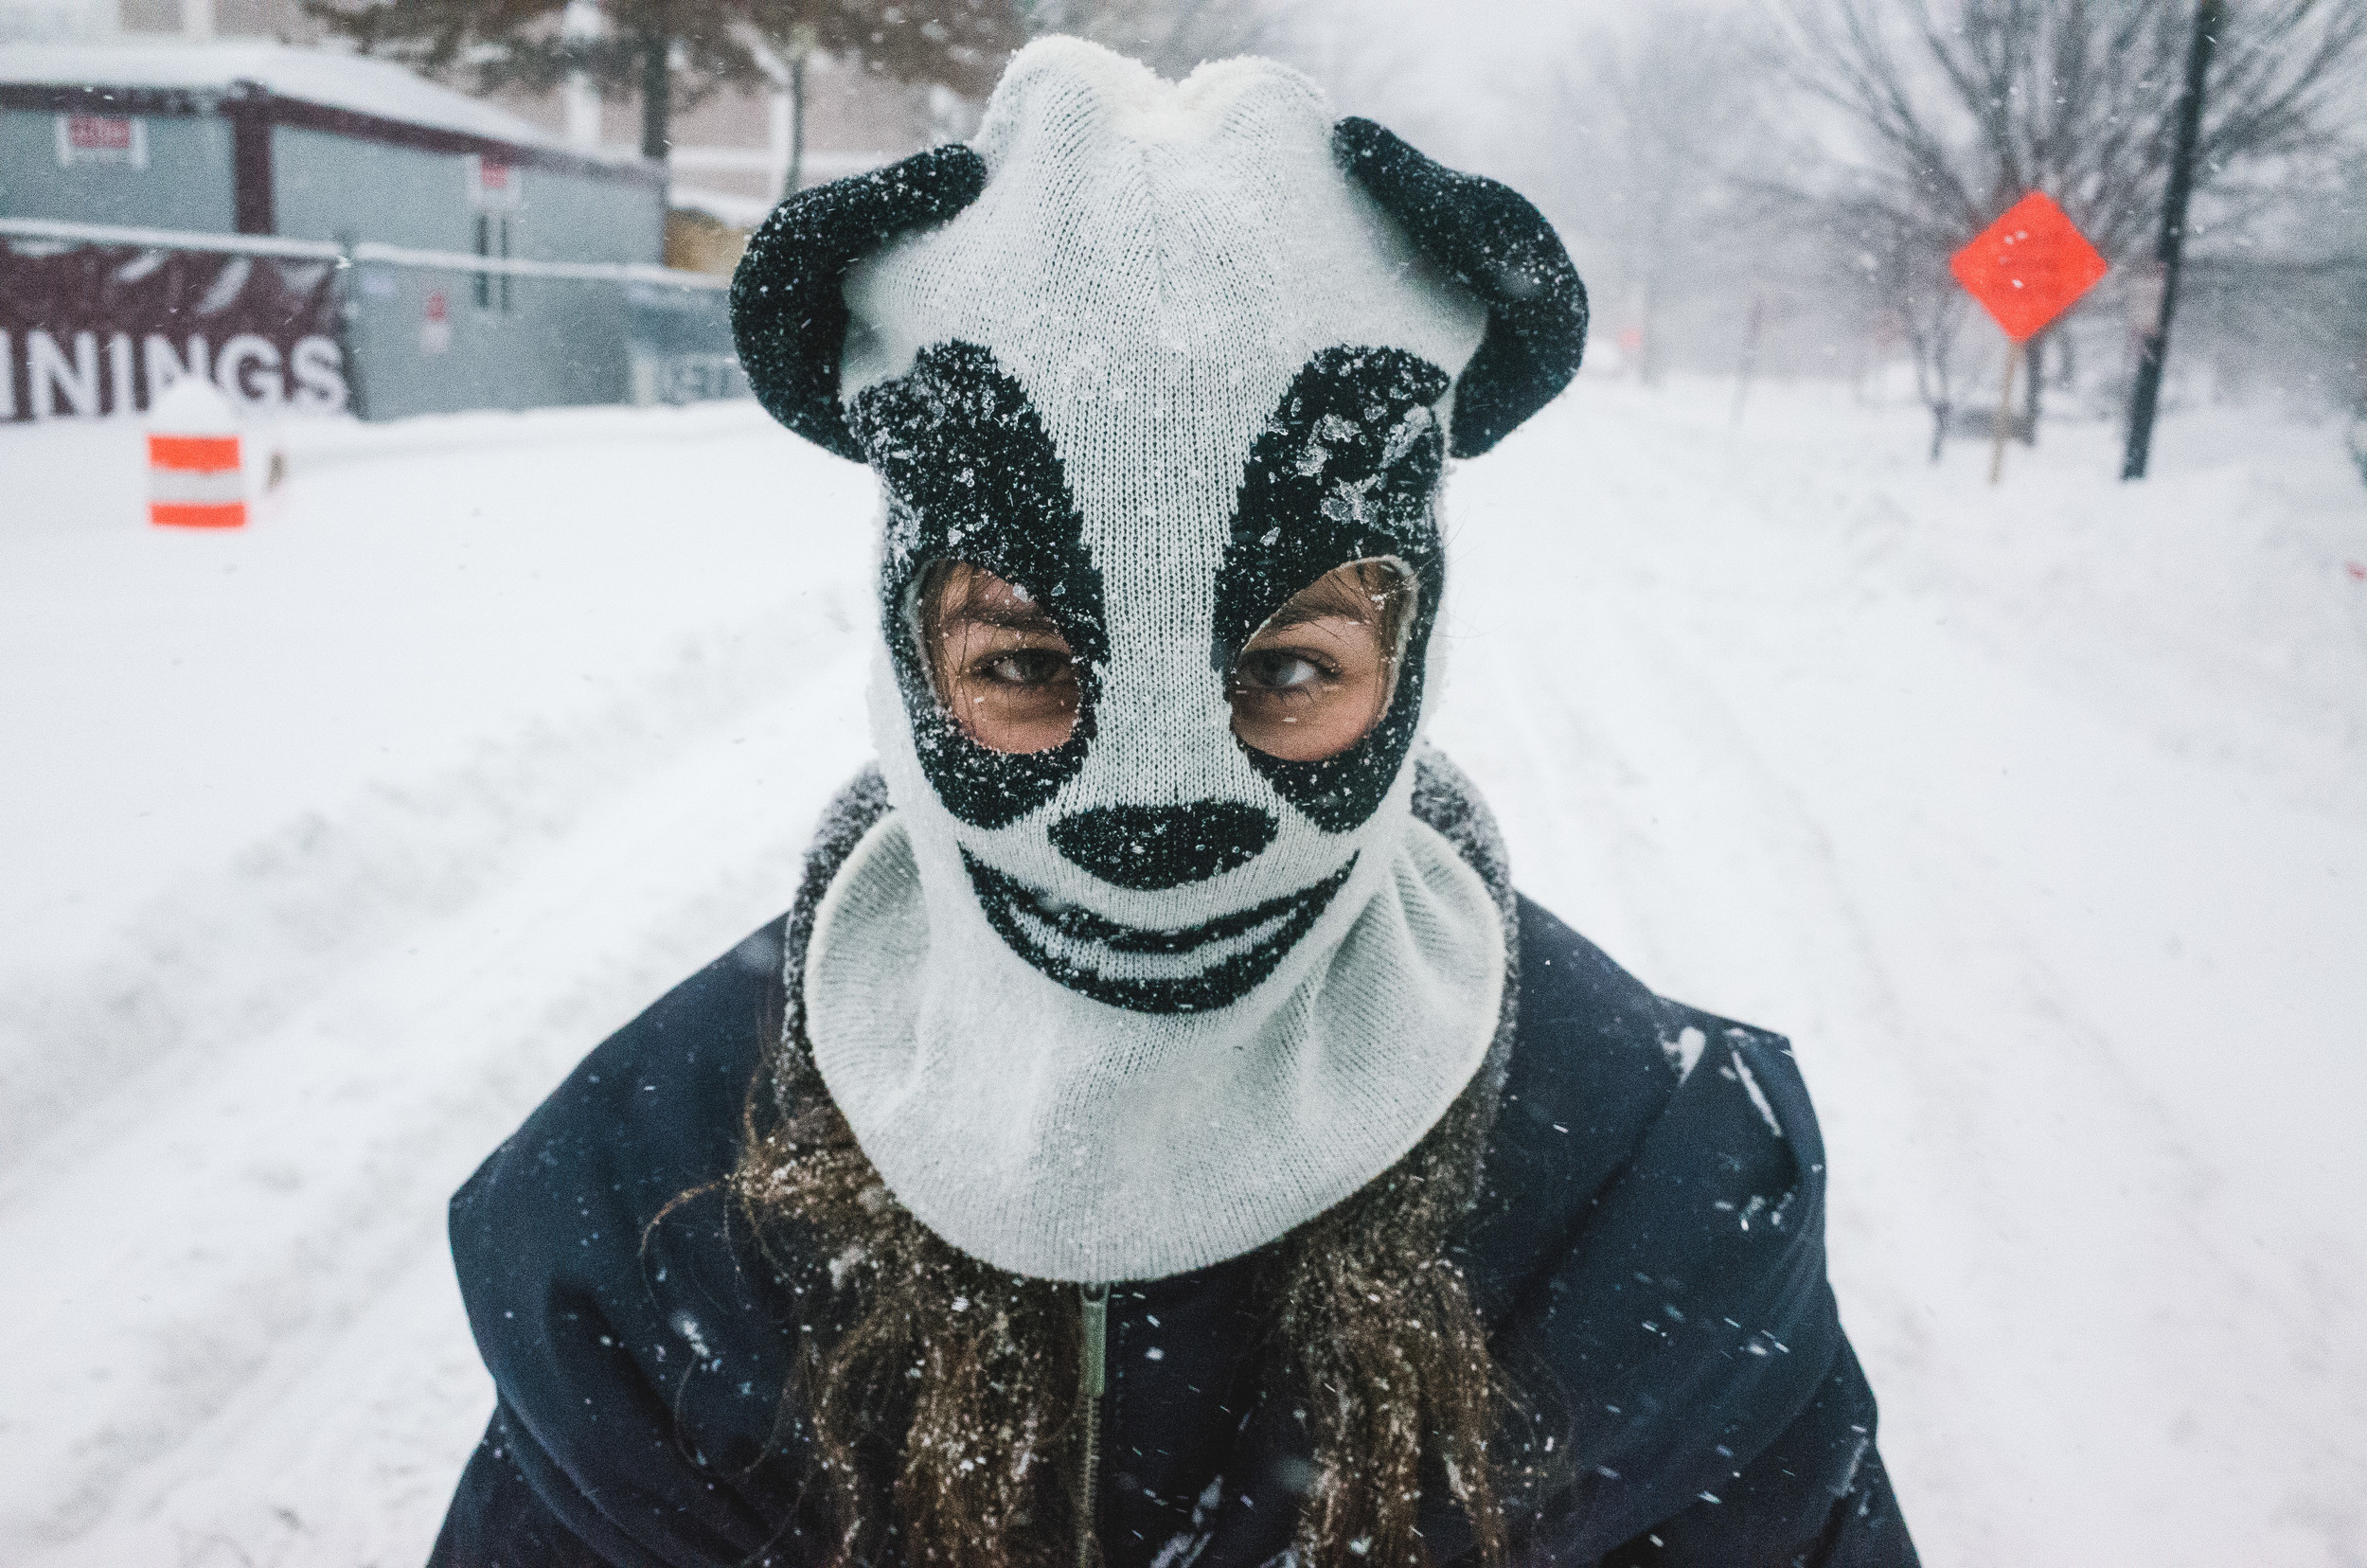 Blizzard Jonas Washington DC 2016 Photographer Mantas Kubilinskas-26.jpg